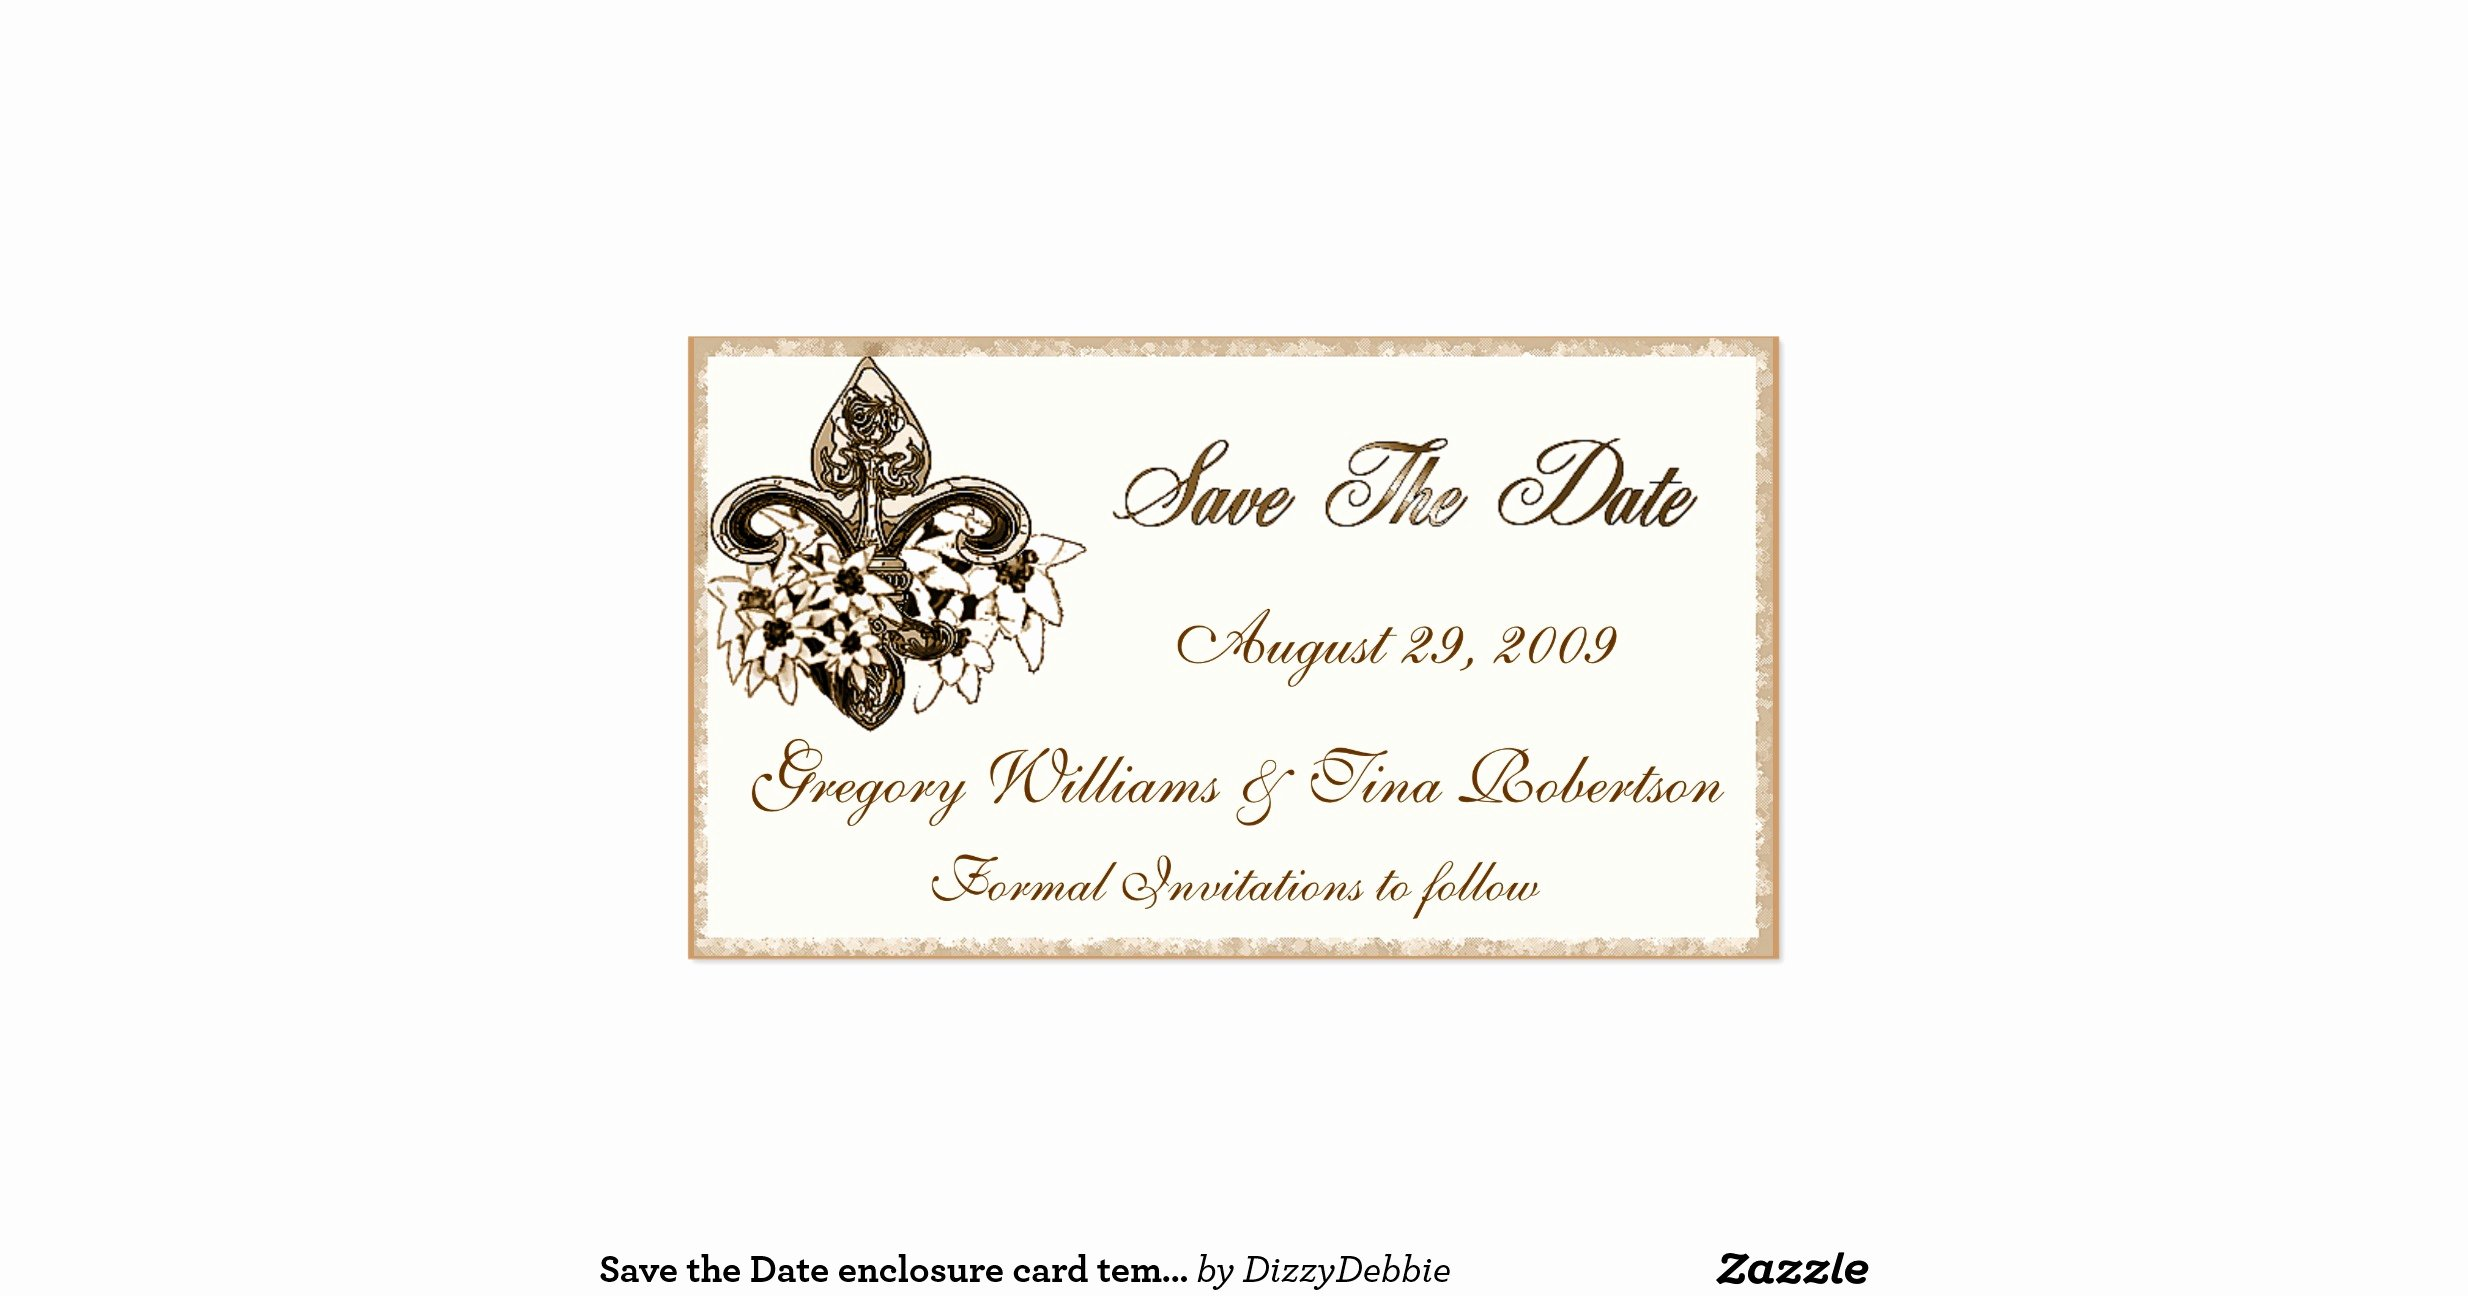 Save the Date Enclosure Card Template Double Sided